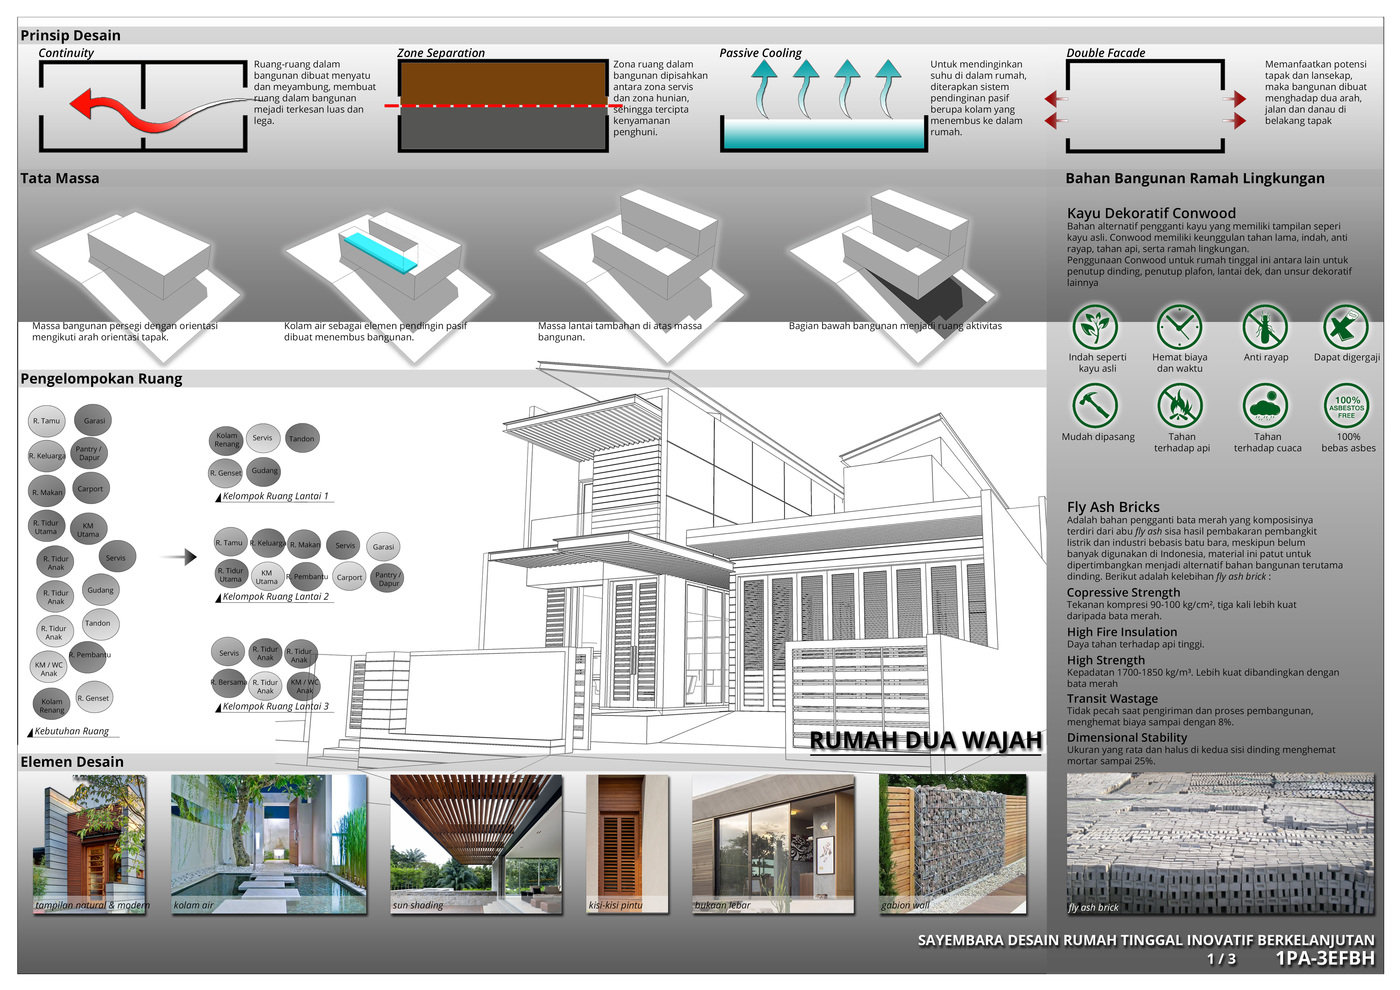 House design competition - 2015 Conwood House Design Competition By Samsyul Hardi At Coroflot Com